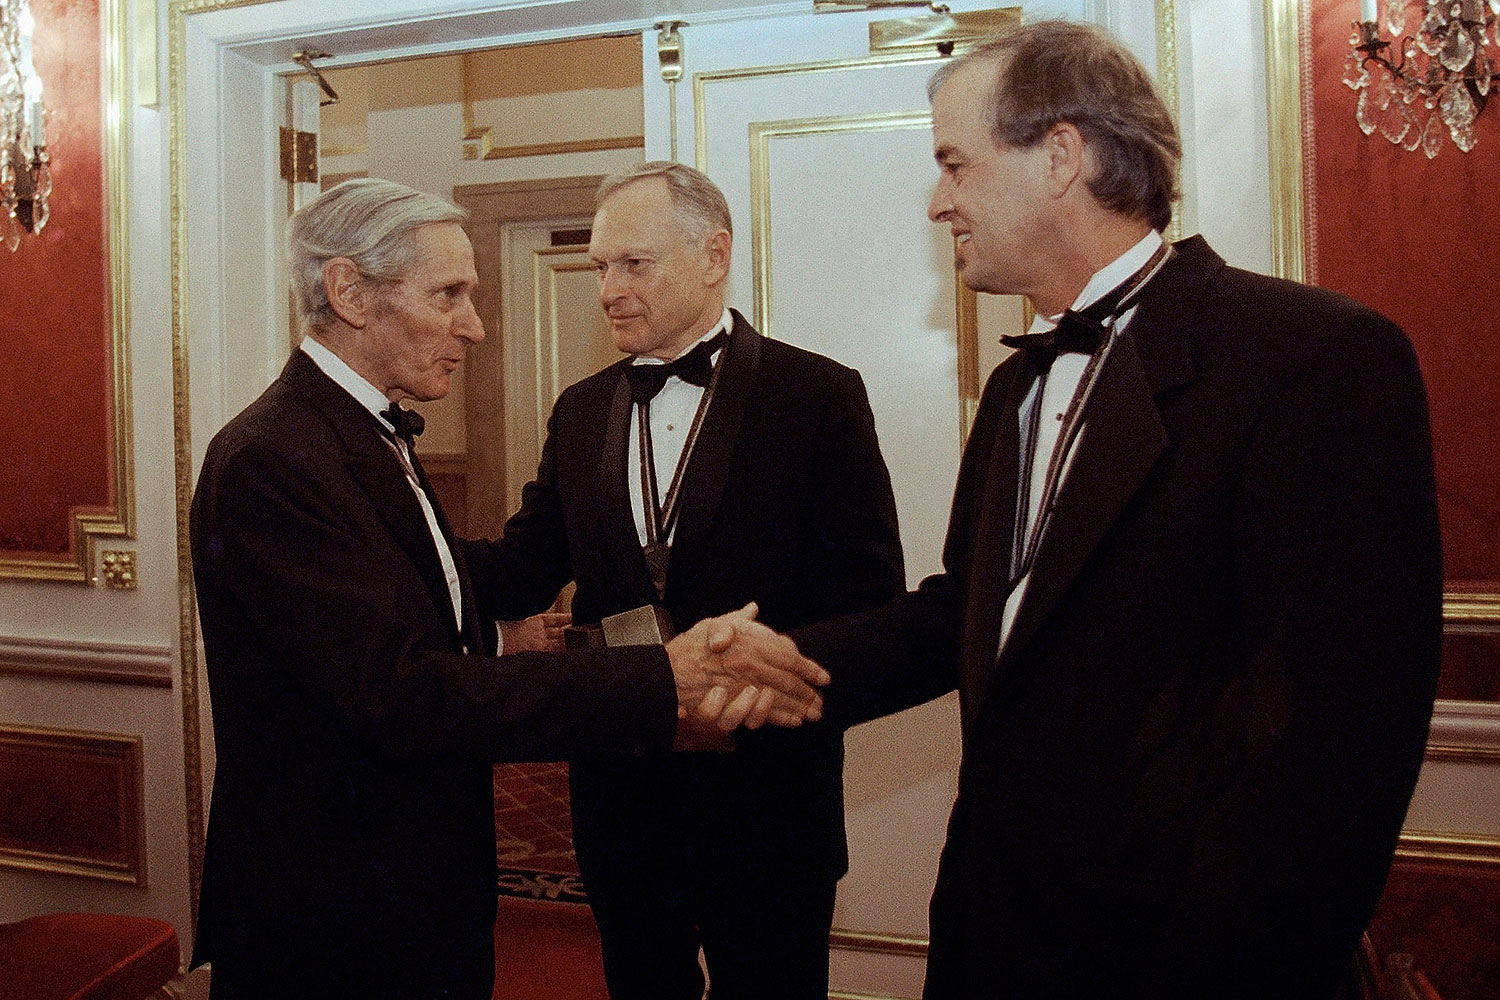 In this Nov. 16, 1994, file photo, The National Book Awards prize winning writers Sherwin B. Nuland, center, William Gaddis, left, and James Tate greet each other after the awards ceremony in New York. Nuland, has died at age 83